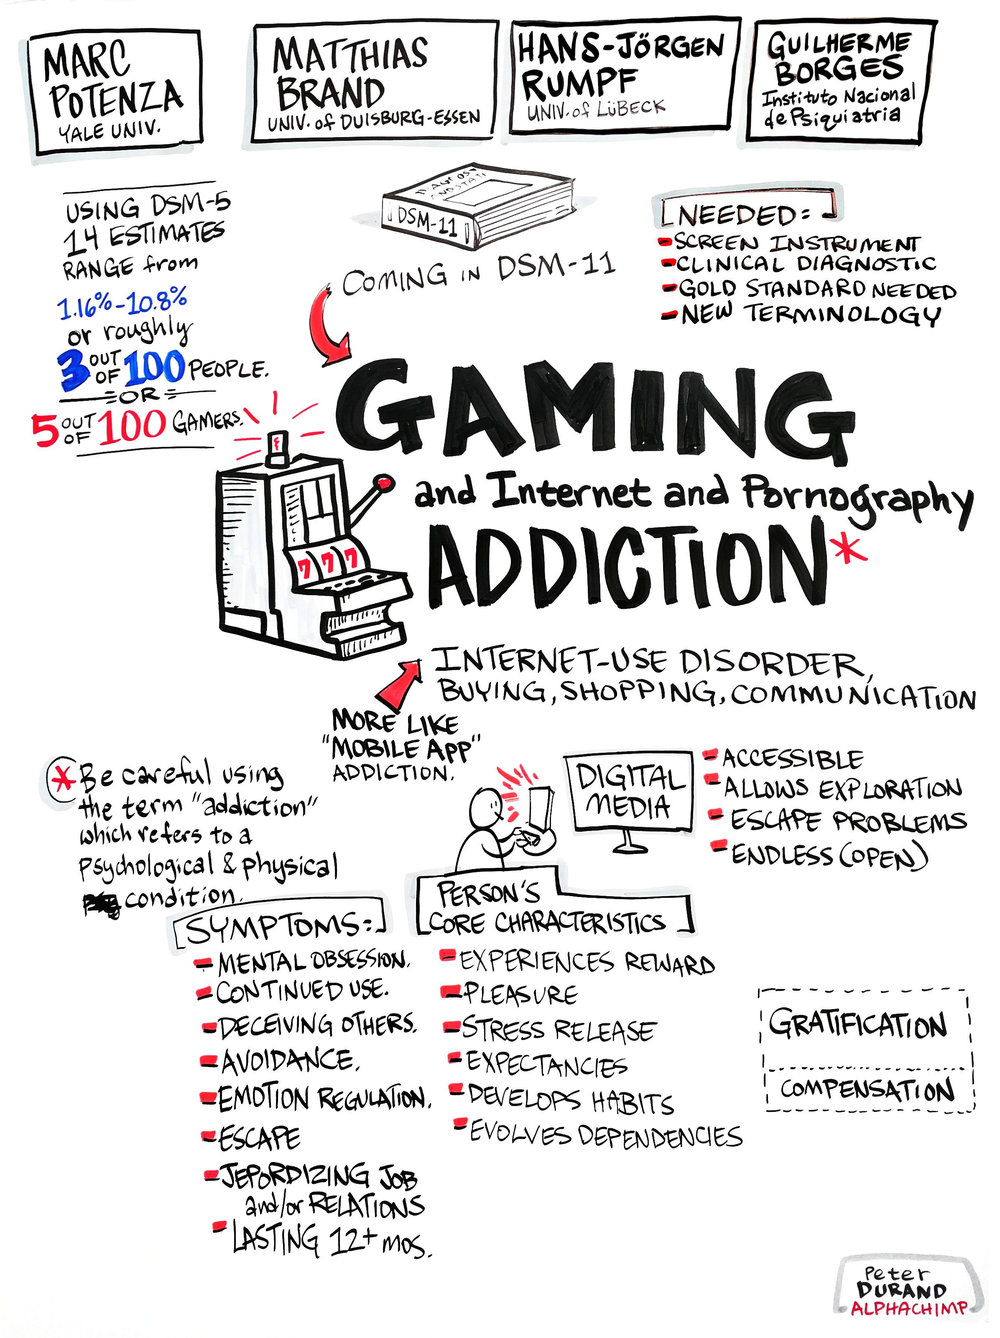 Who Has a Problem With Internet Use? Screening for, Assessing and Diagnosing Internet and Gaming Addiction